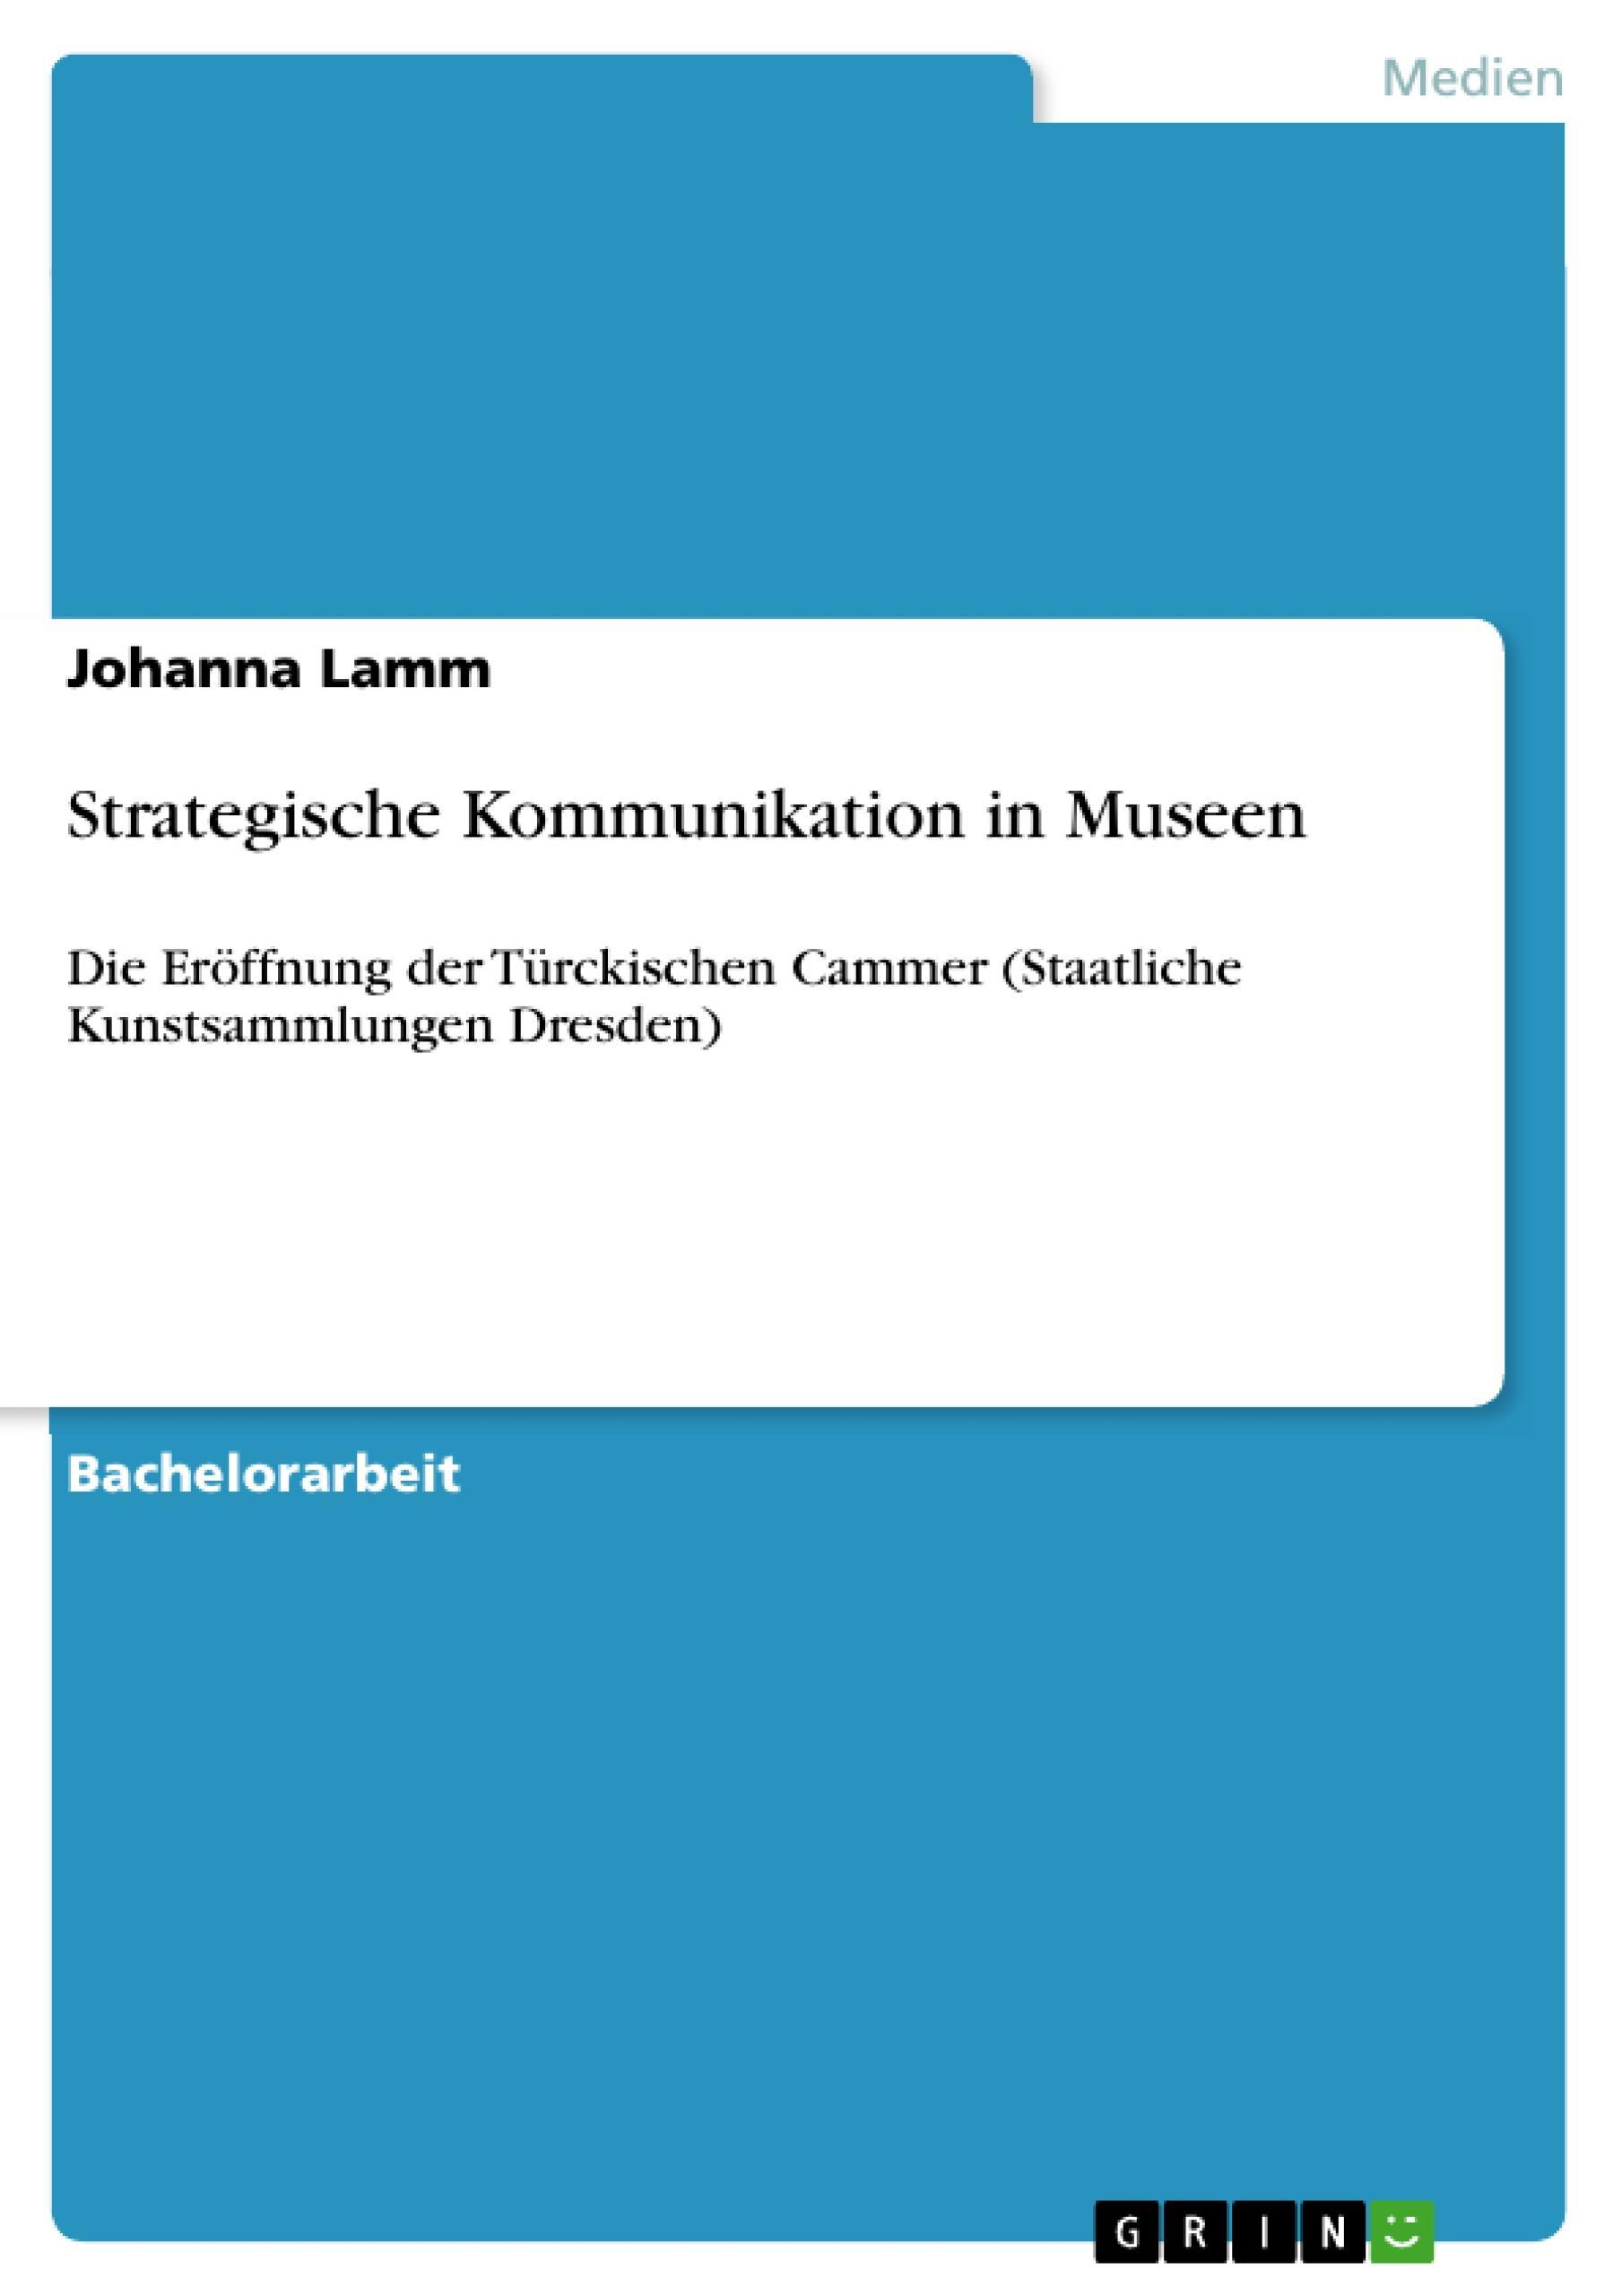 Strategische Kommunikation in Museen Johanna Lamm